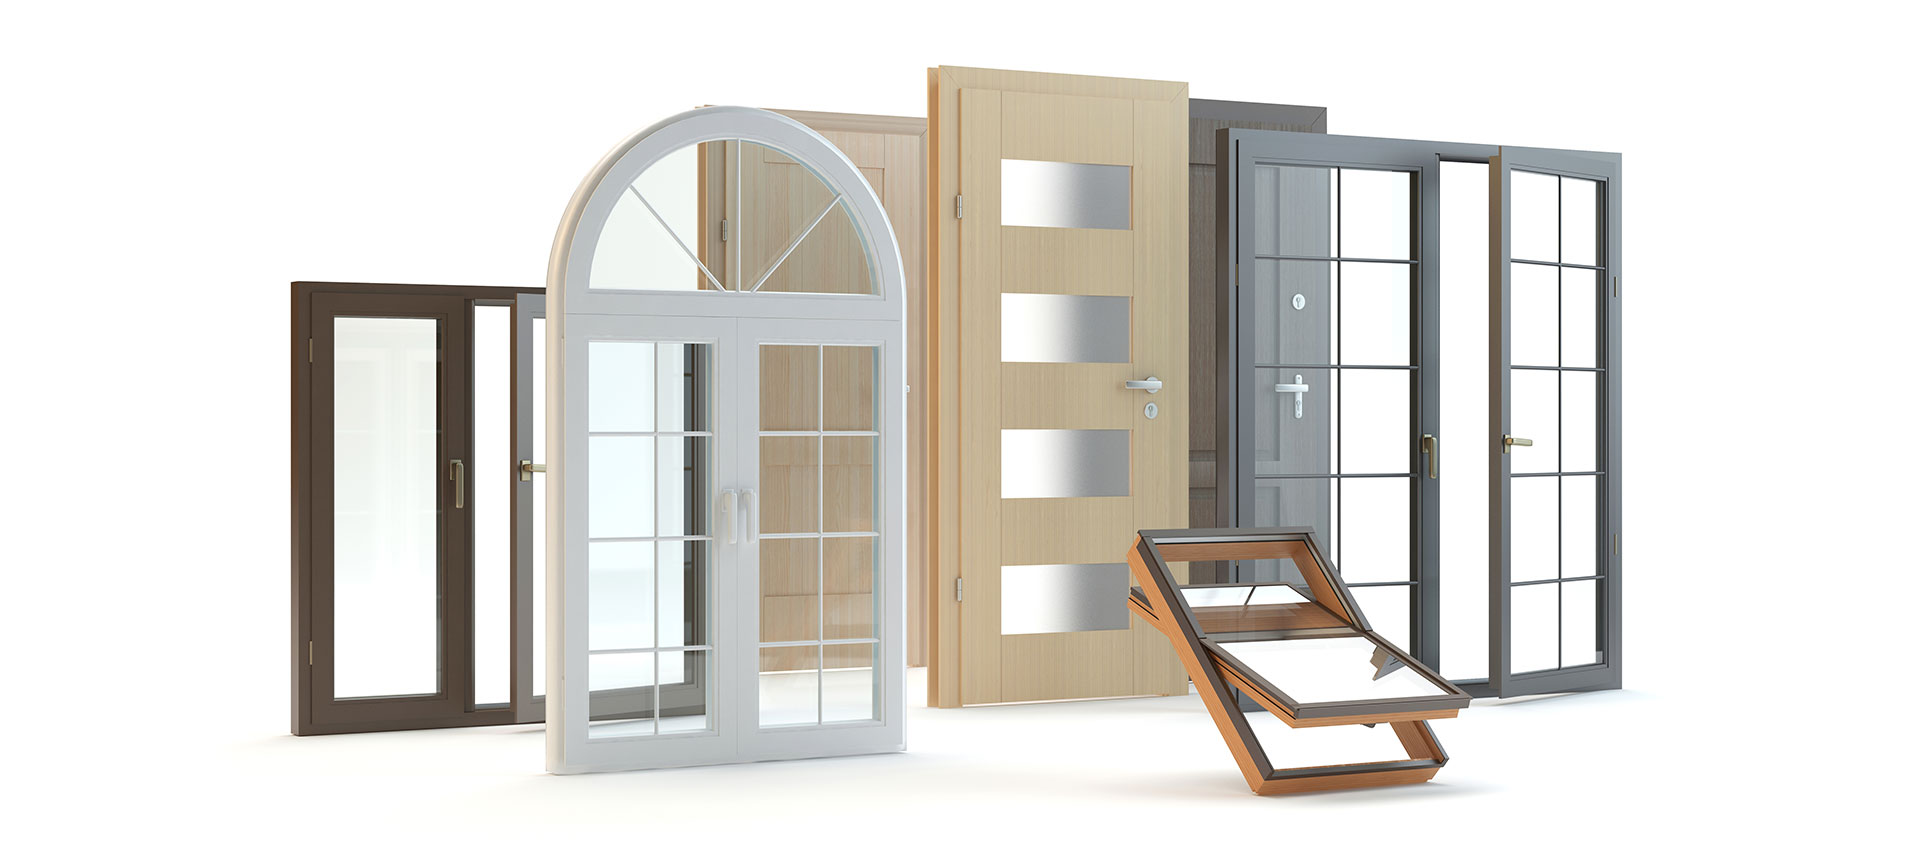 High Quality <br> windows &#038; doors